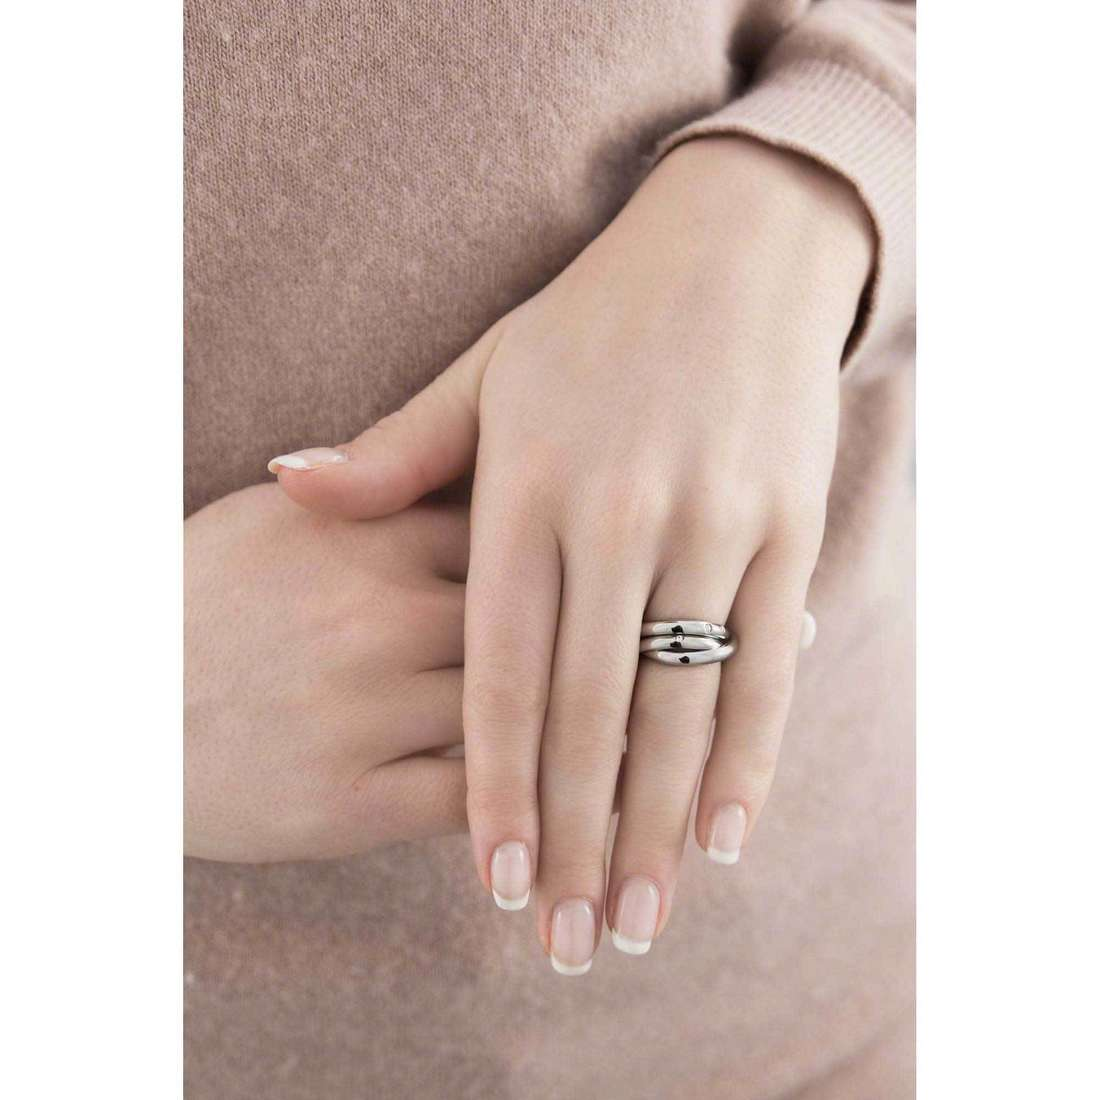 Morellato bagues Love Rings femme SNA10012 indosso